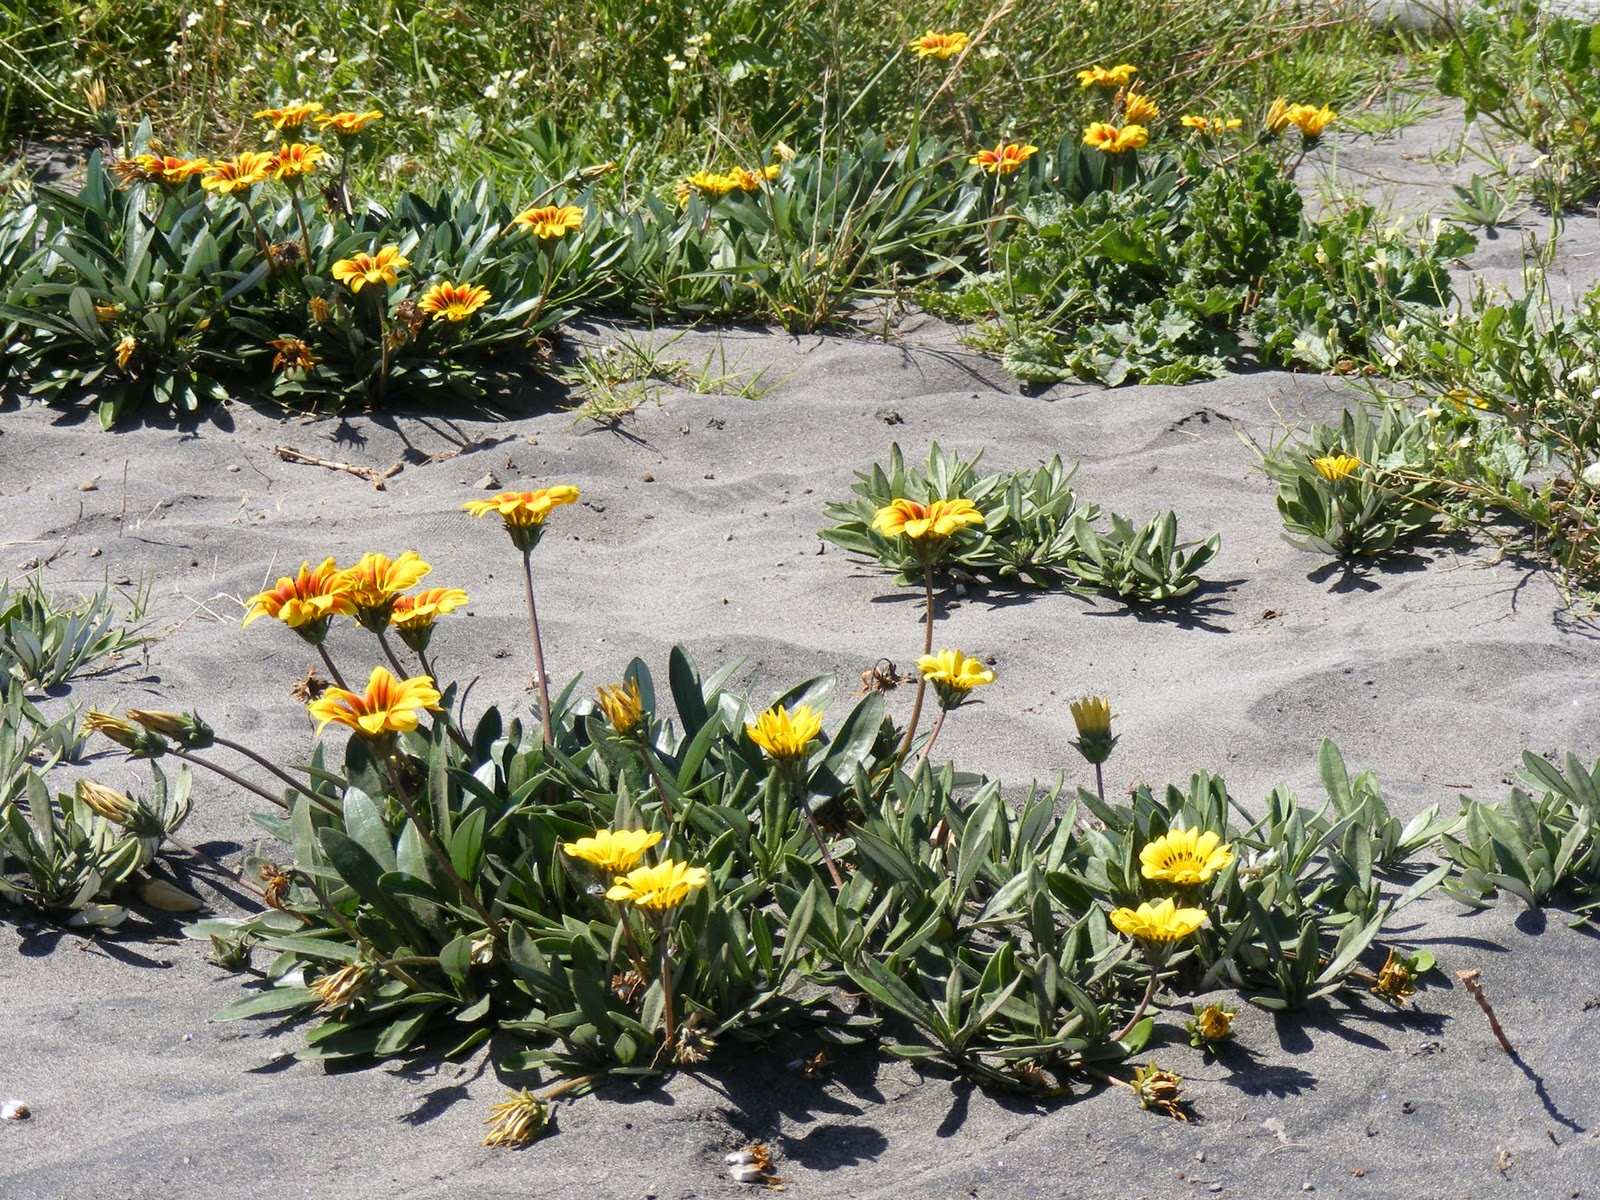 Photographing New Zealand Flowers In The Sand